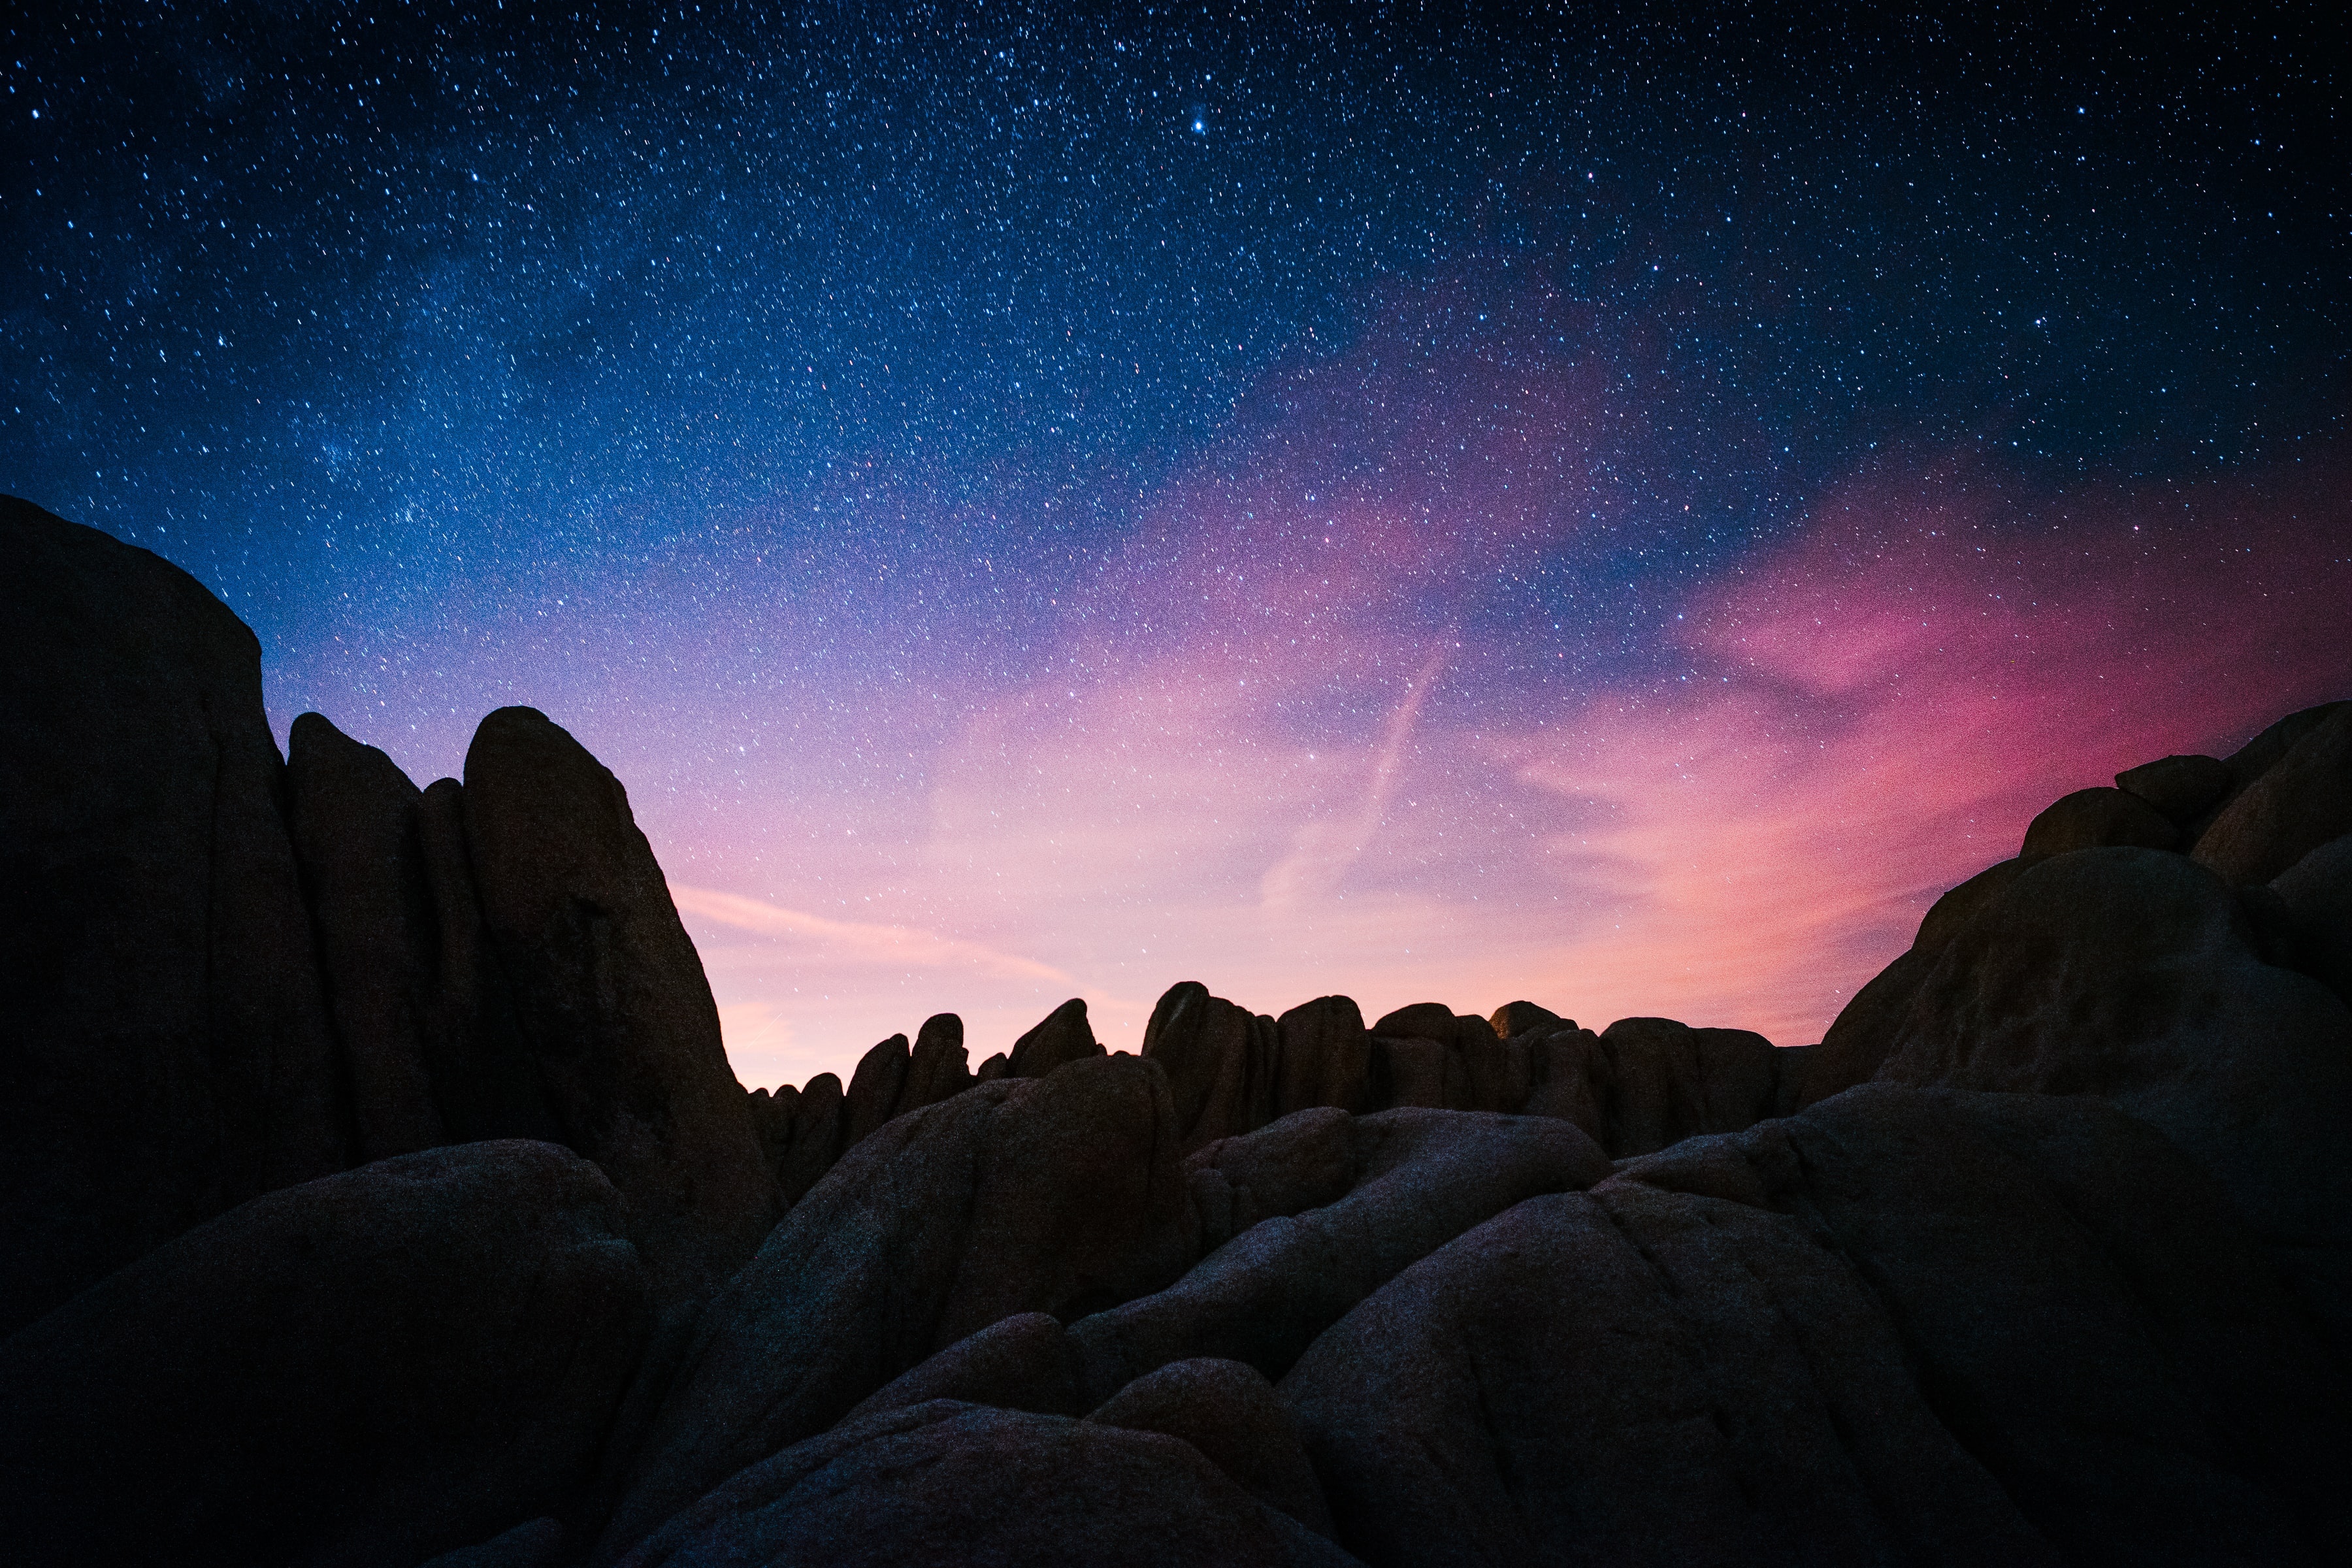 The sky full of stars with blue and pink hues over the rock formations.